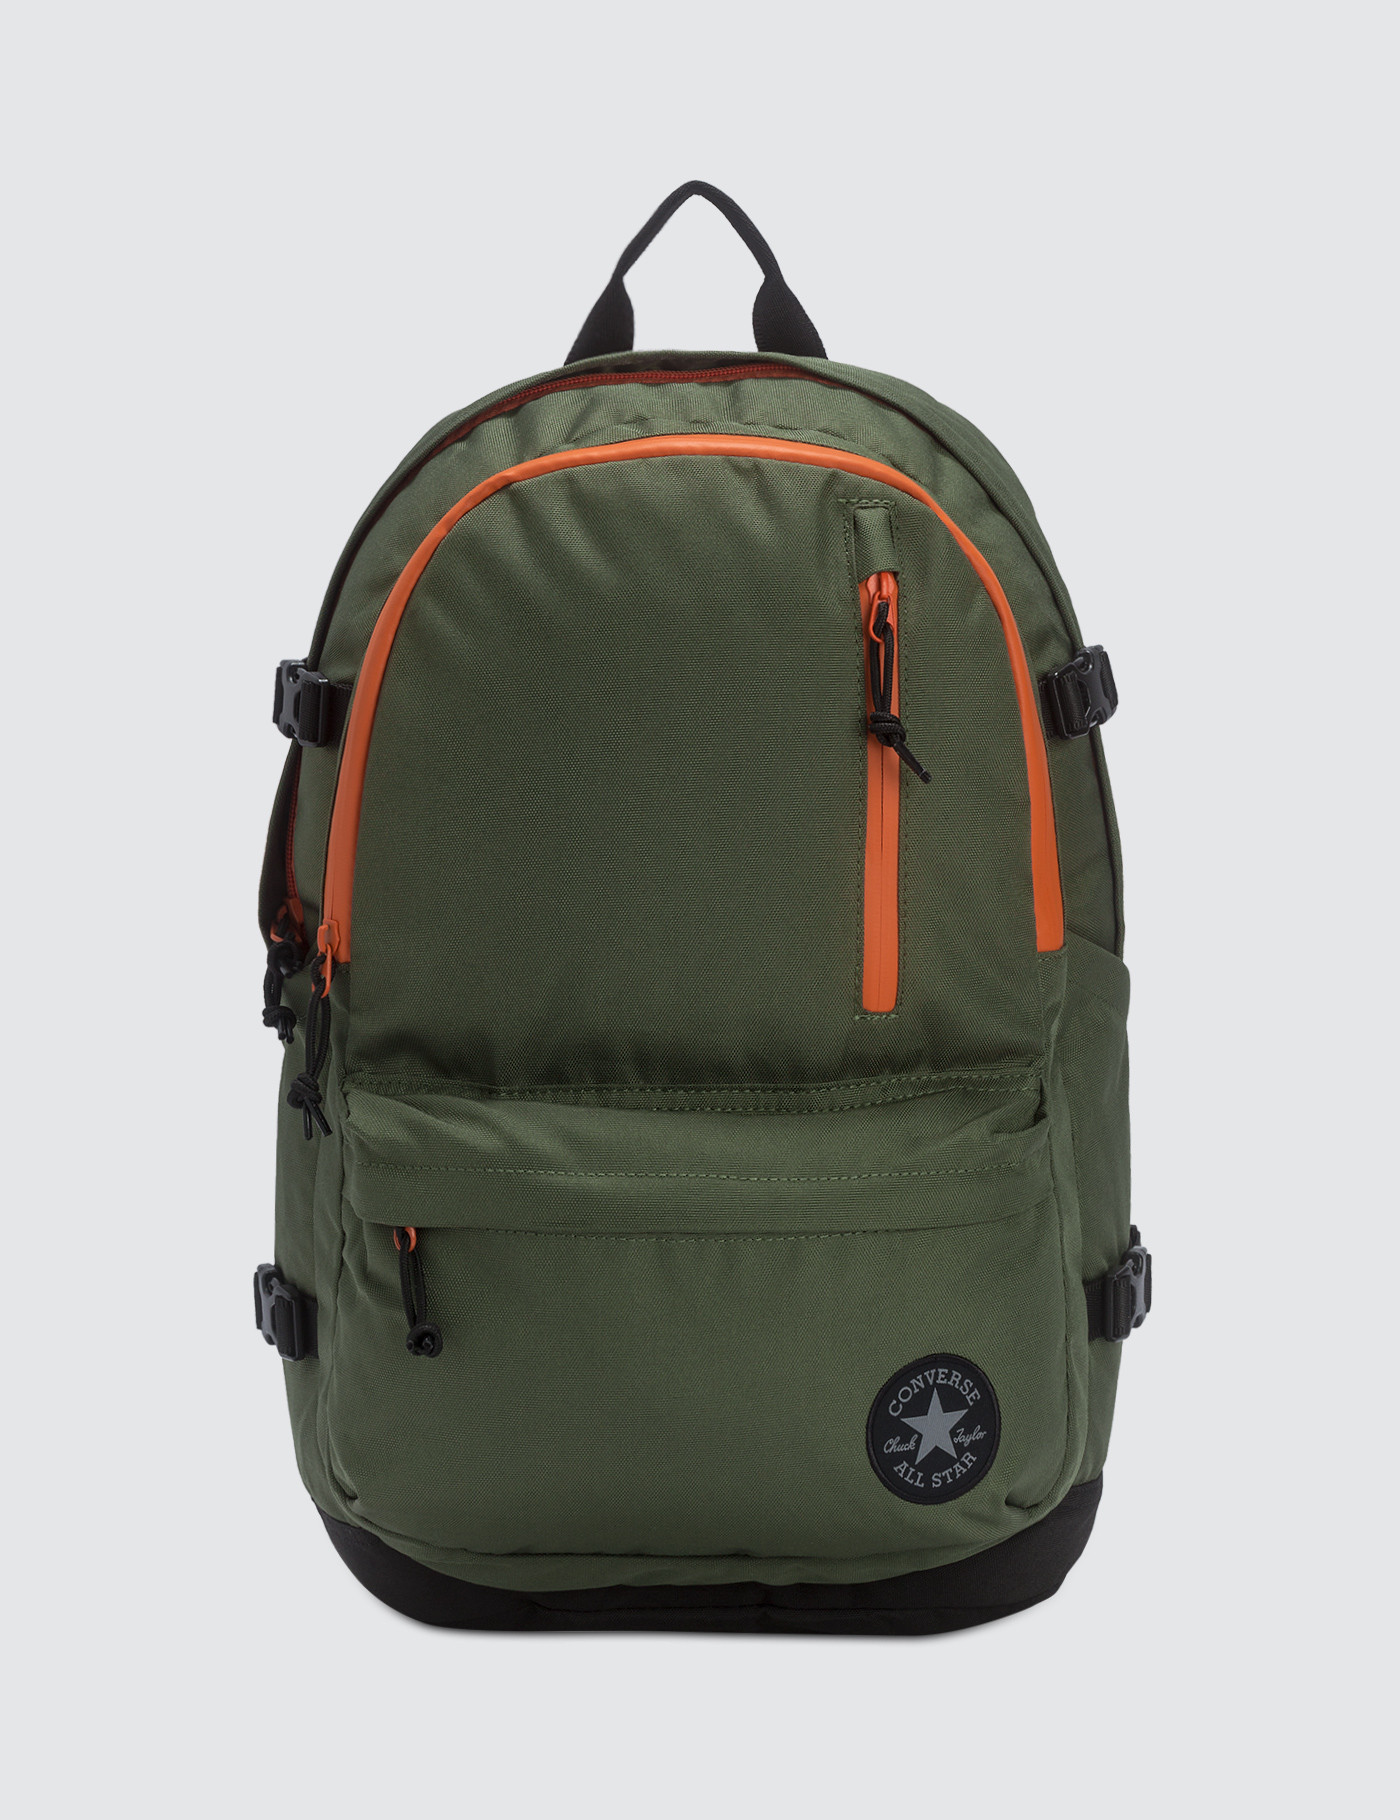 956c17e79a Buy Original Converse Straight Edge Backpack at Indonesia